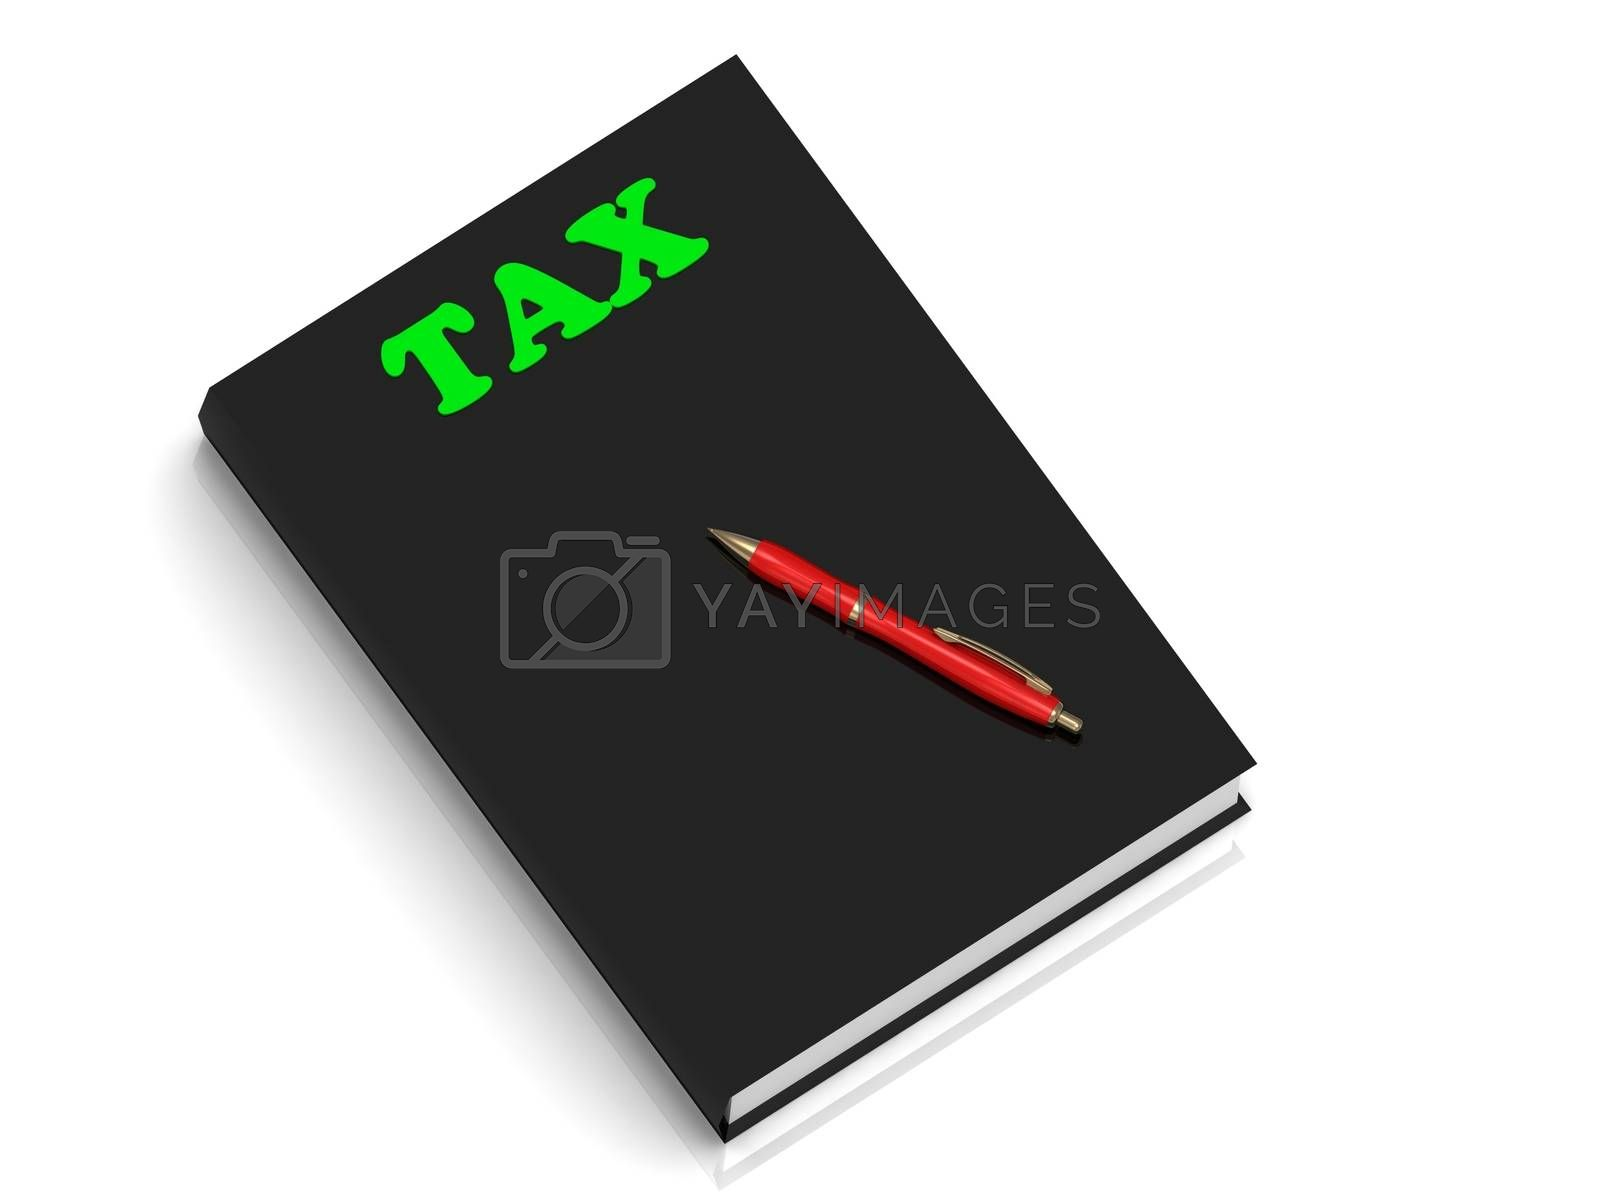 TAX- inscription of green letters on black book on white background